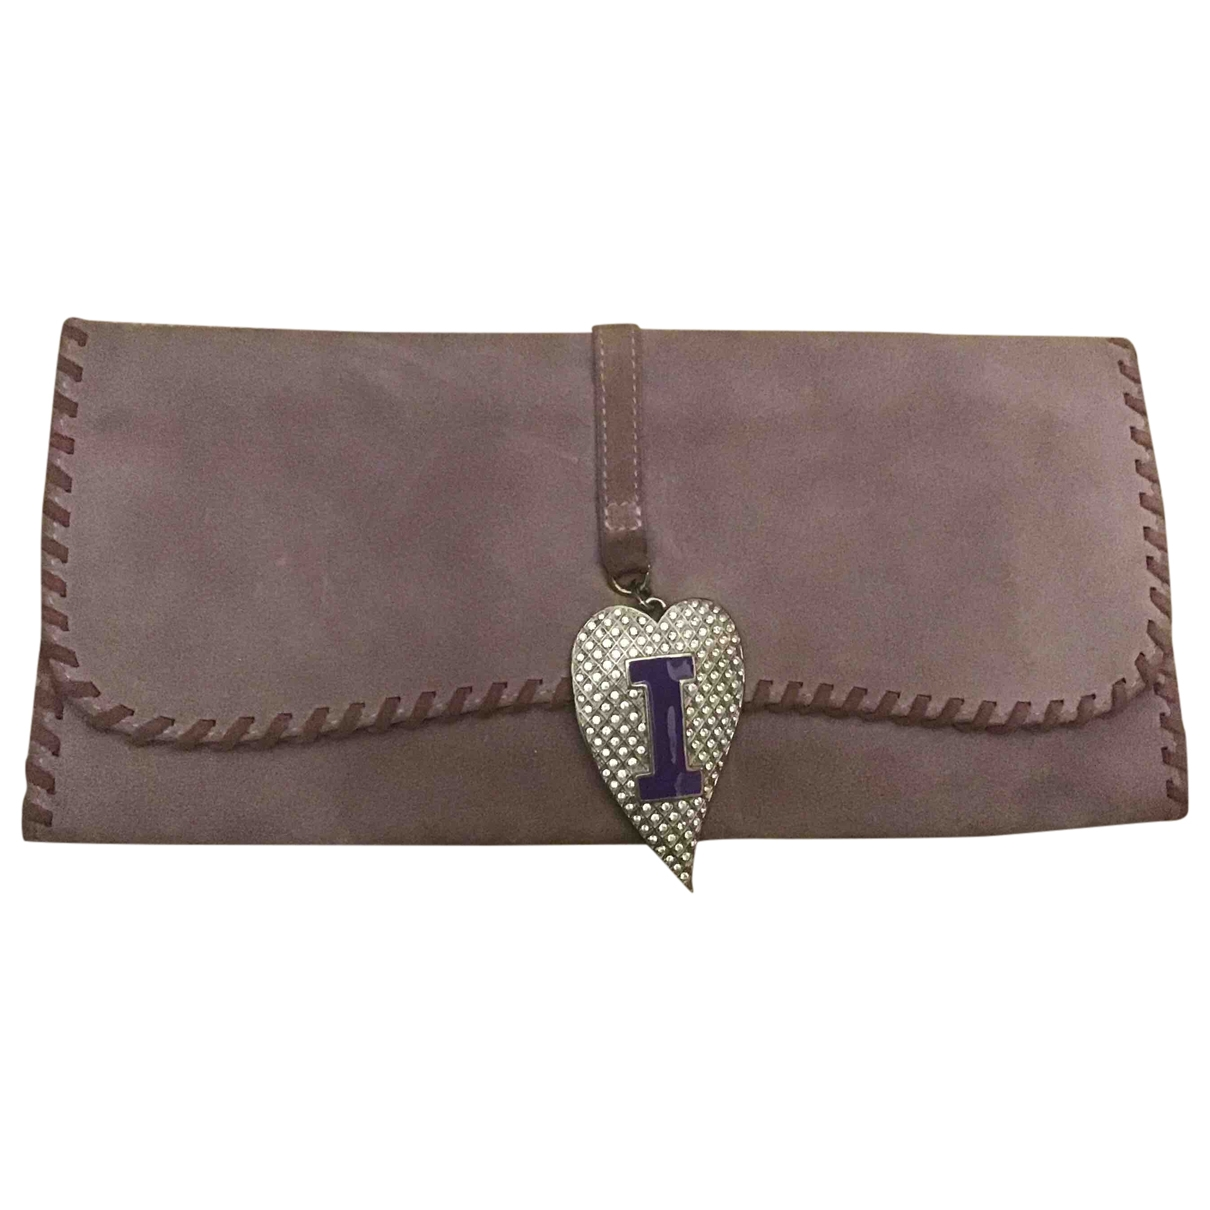 Iceberg \N Purple Suede Clutch bag for Women \N